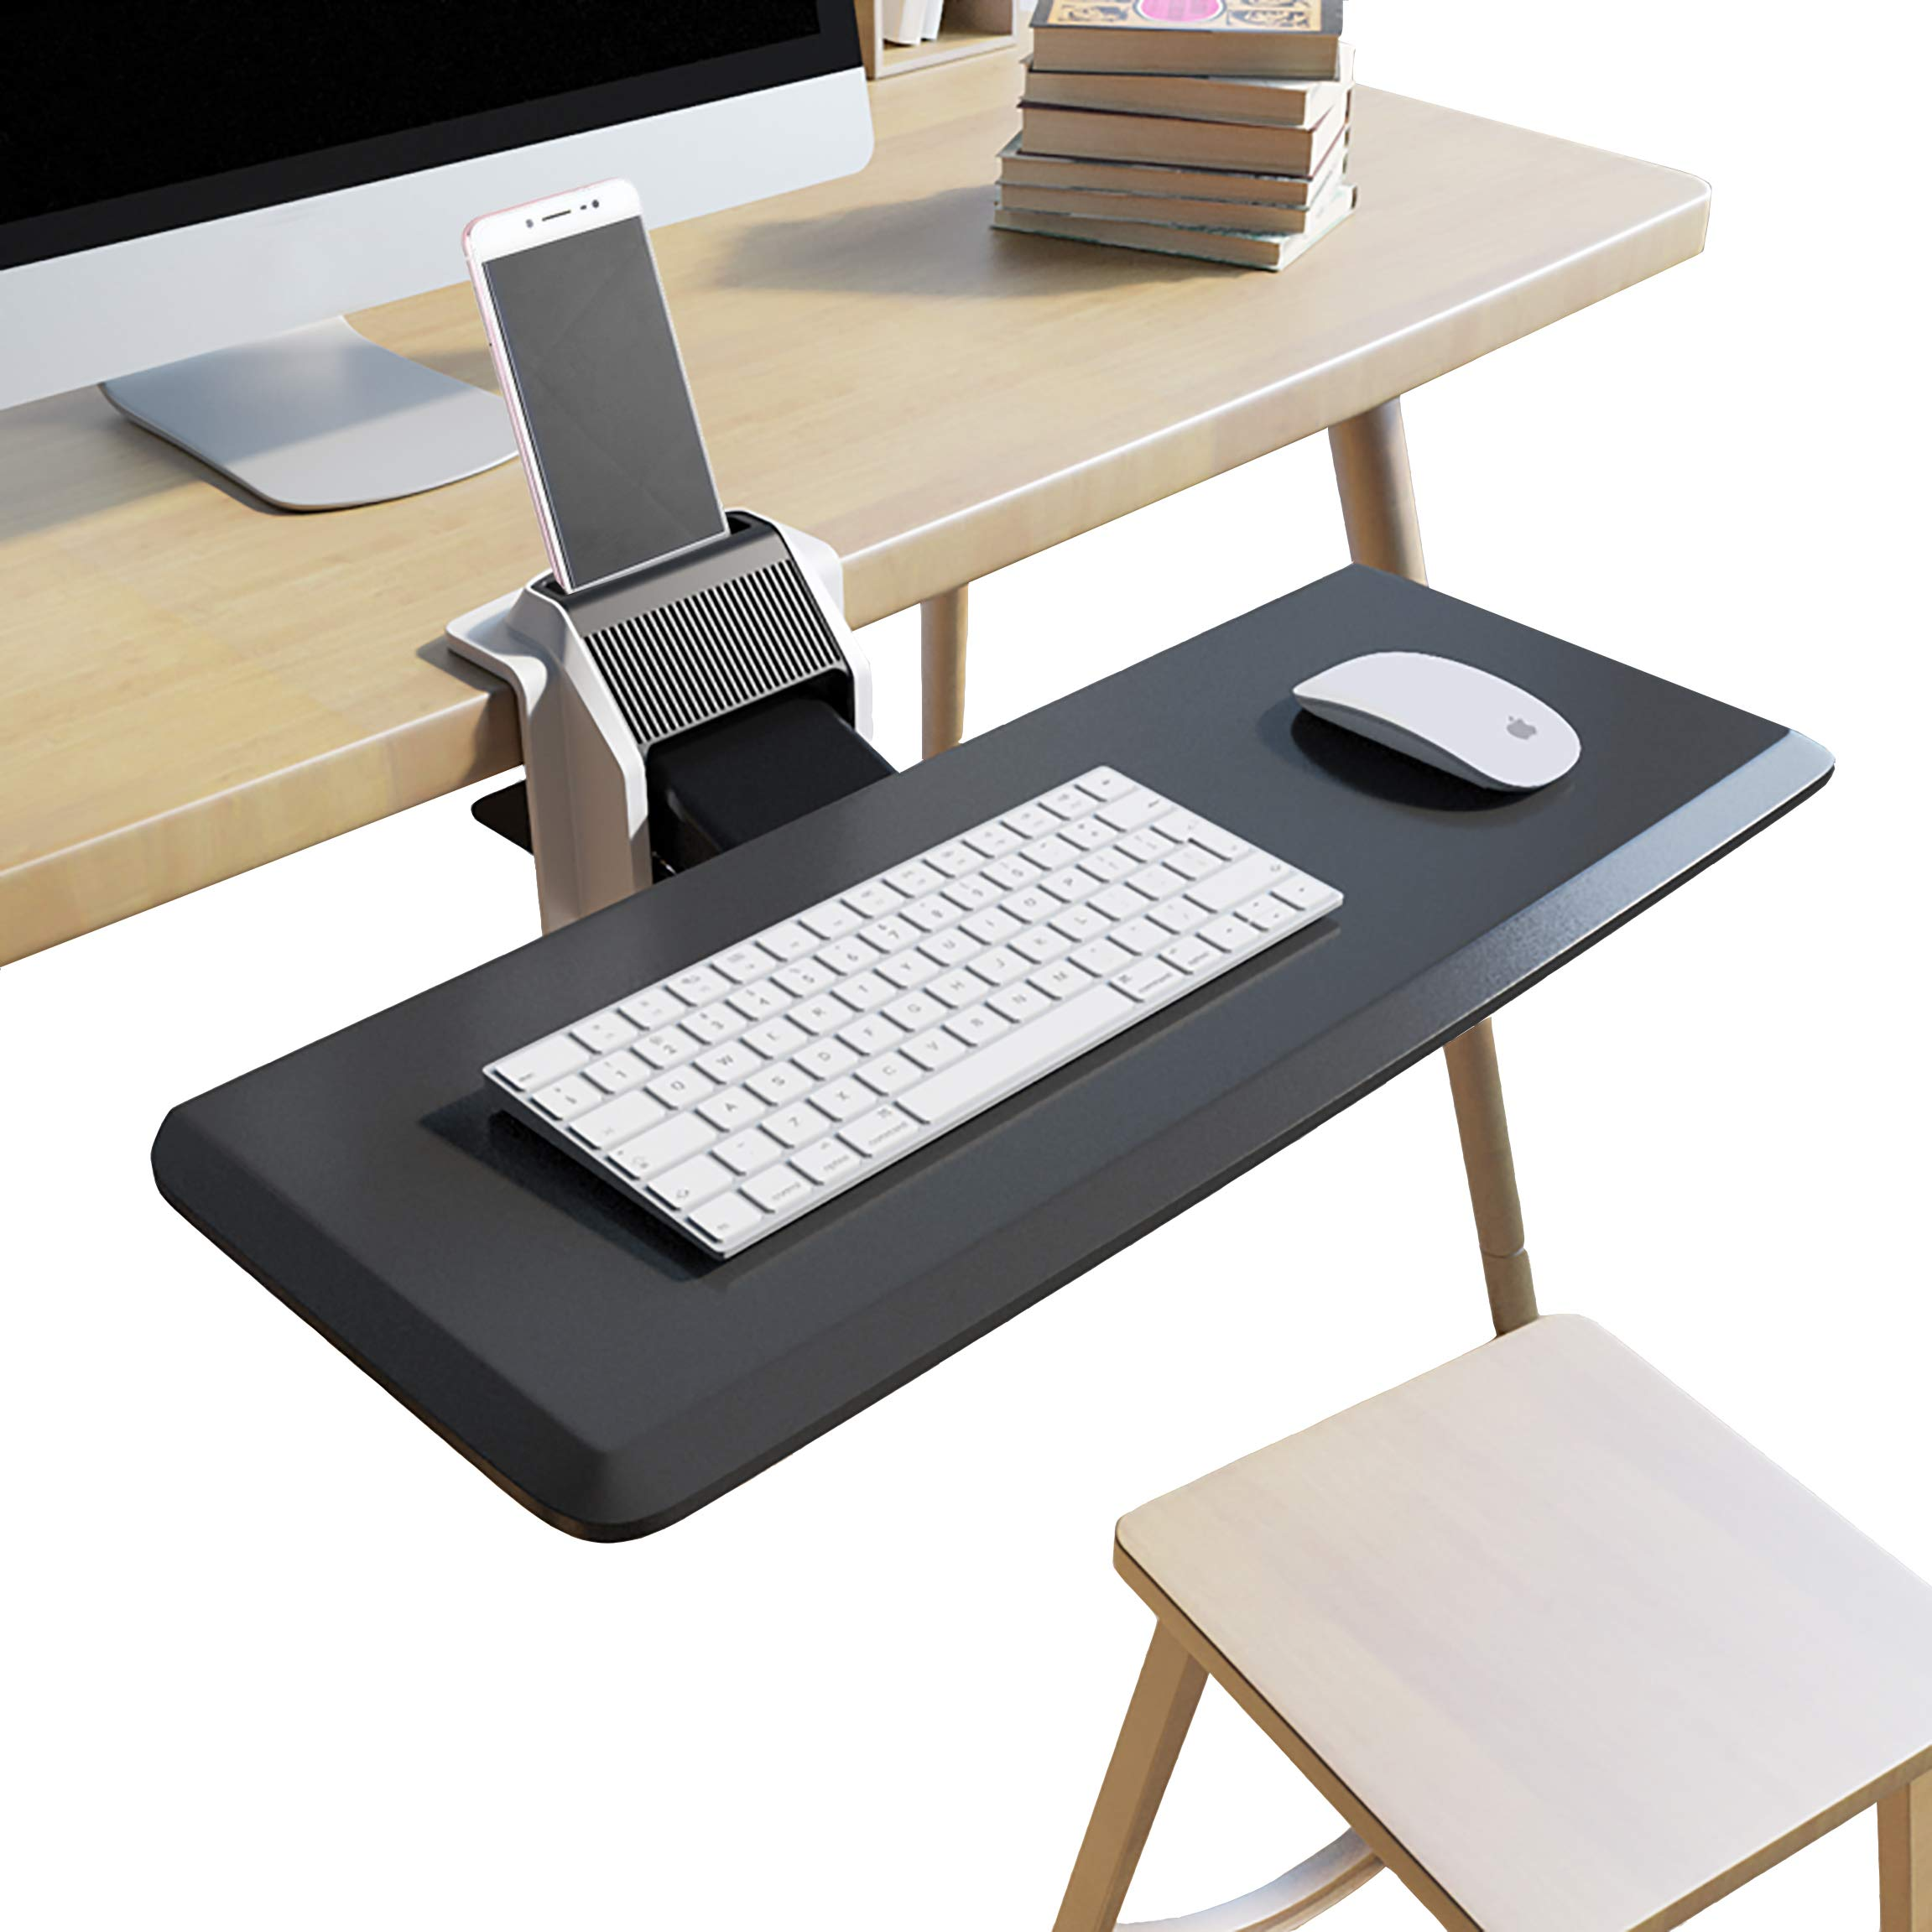 Clamp On Keyboard Tray Adjustable Angle and Height with Cellphone Holder Stand Easy Installation No Need to Drill & Screw, Not Sliding Under The Desk or Counter, Ergonomic Design Anti Slip Wrist Rest by TrayClicks